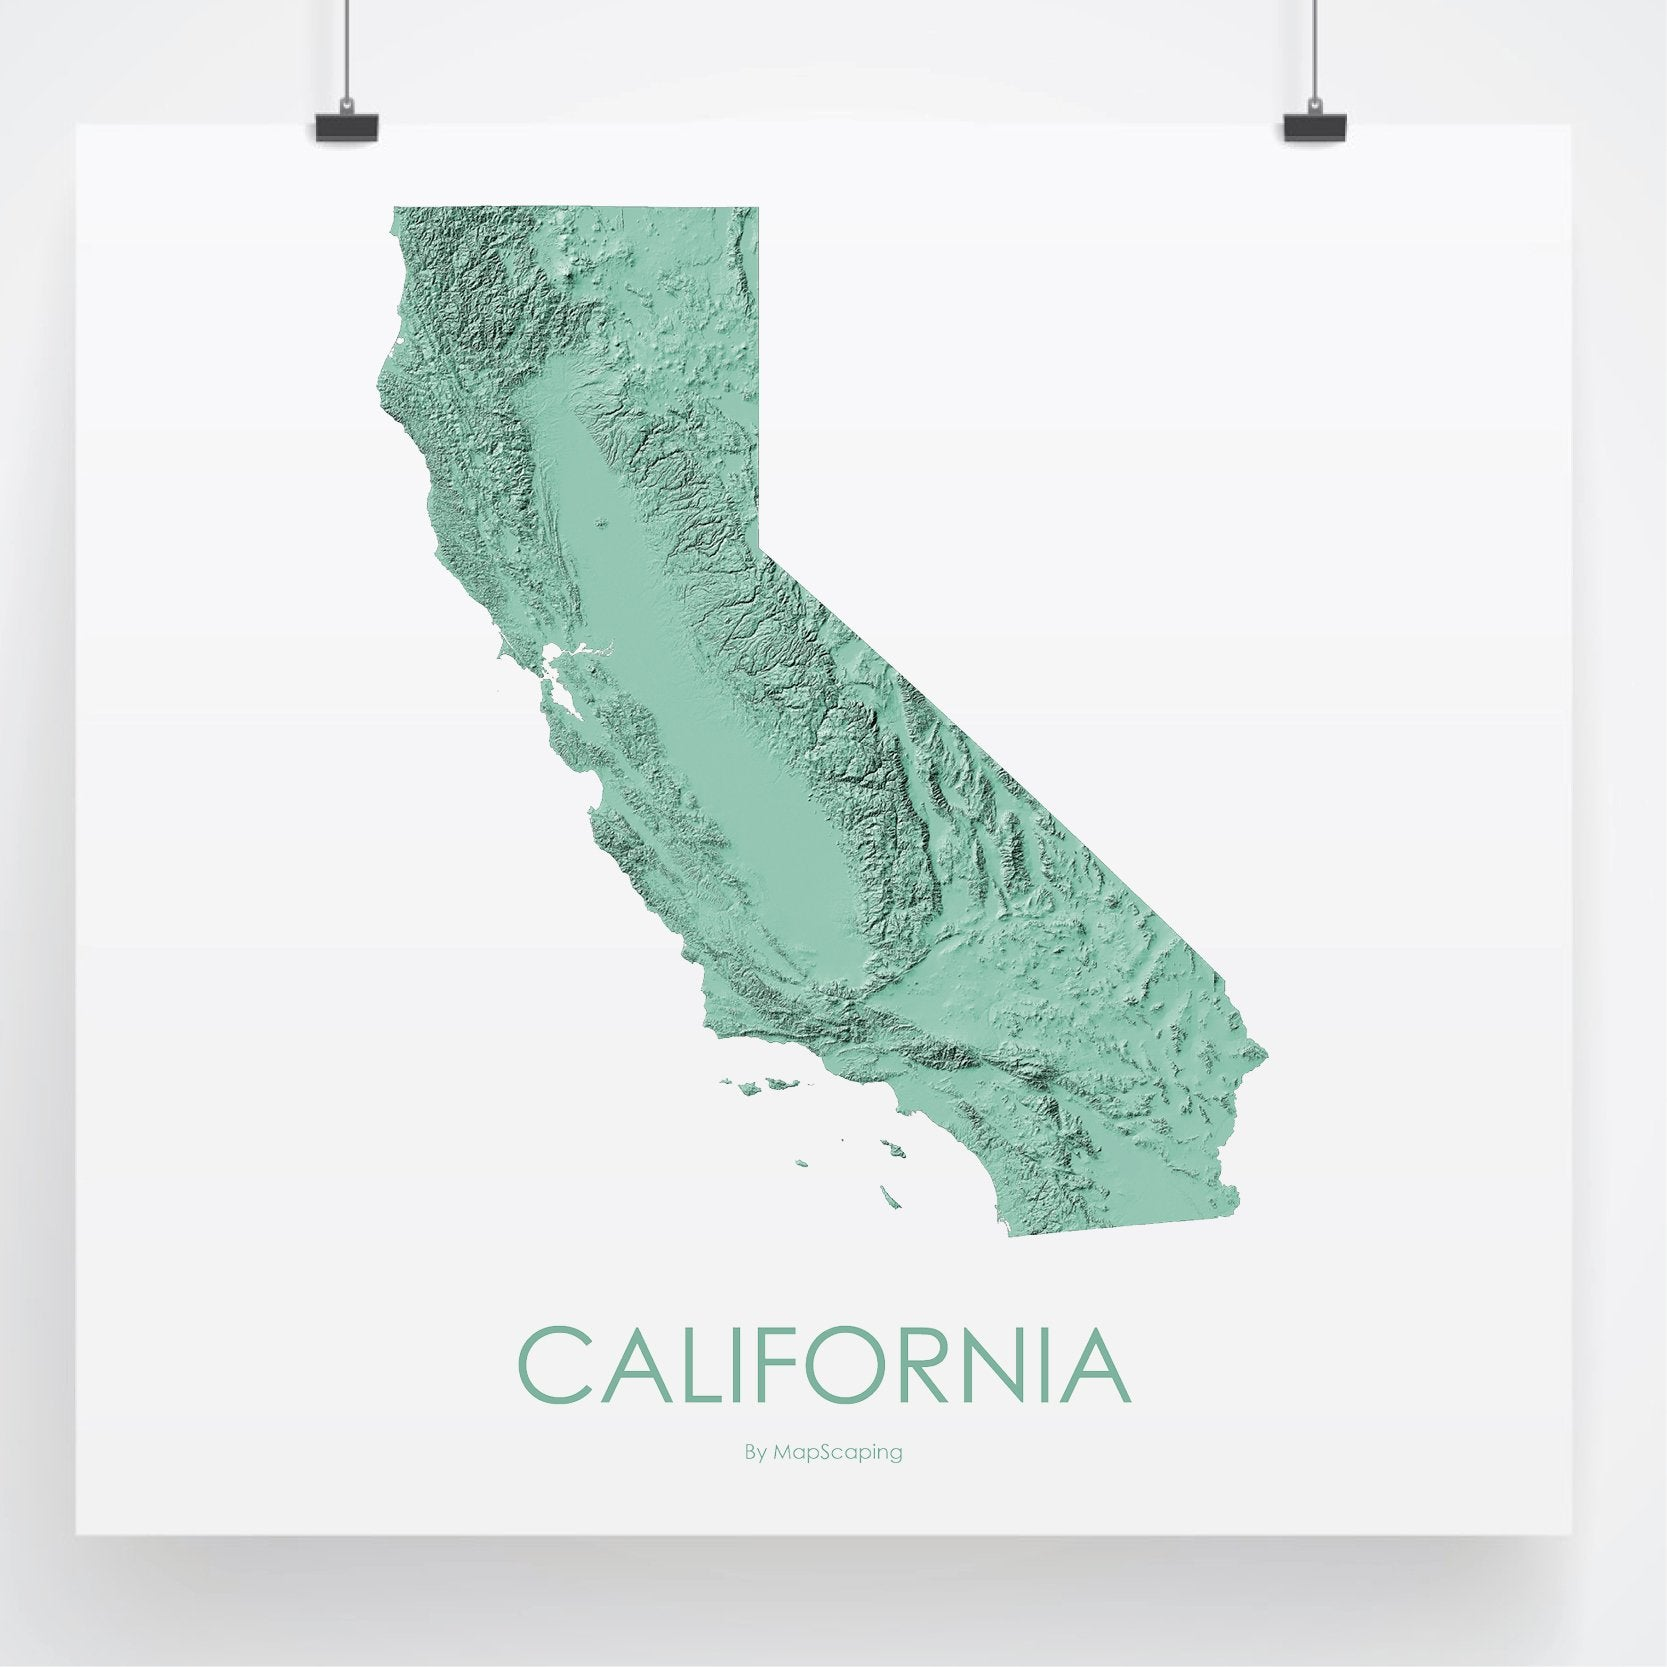 California Poster Solid Mint -Topographic map art by MapScaping